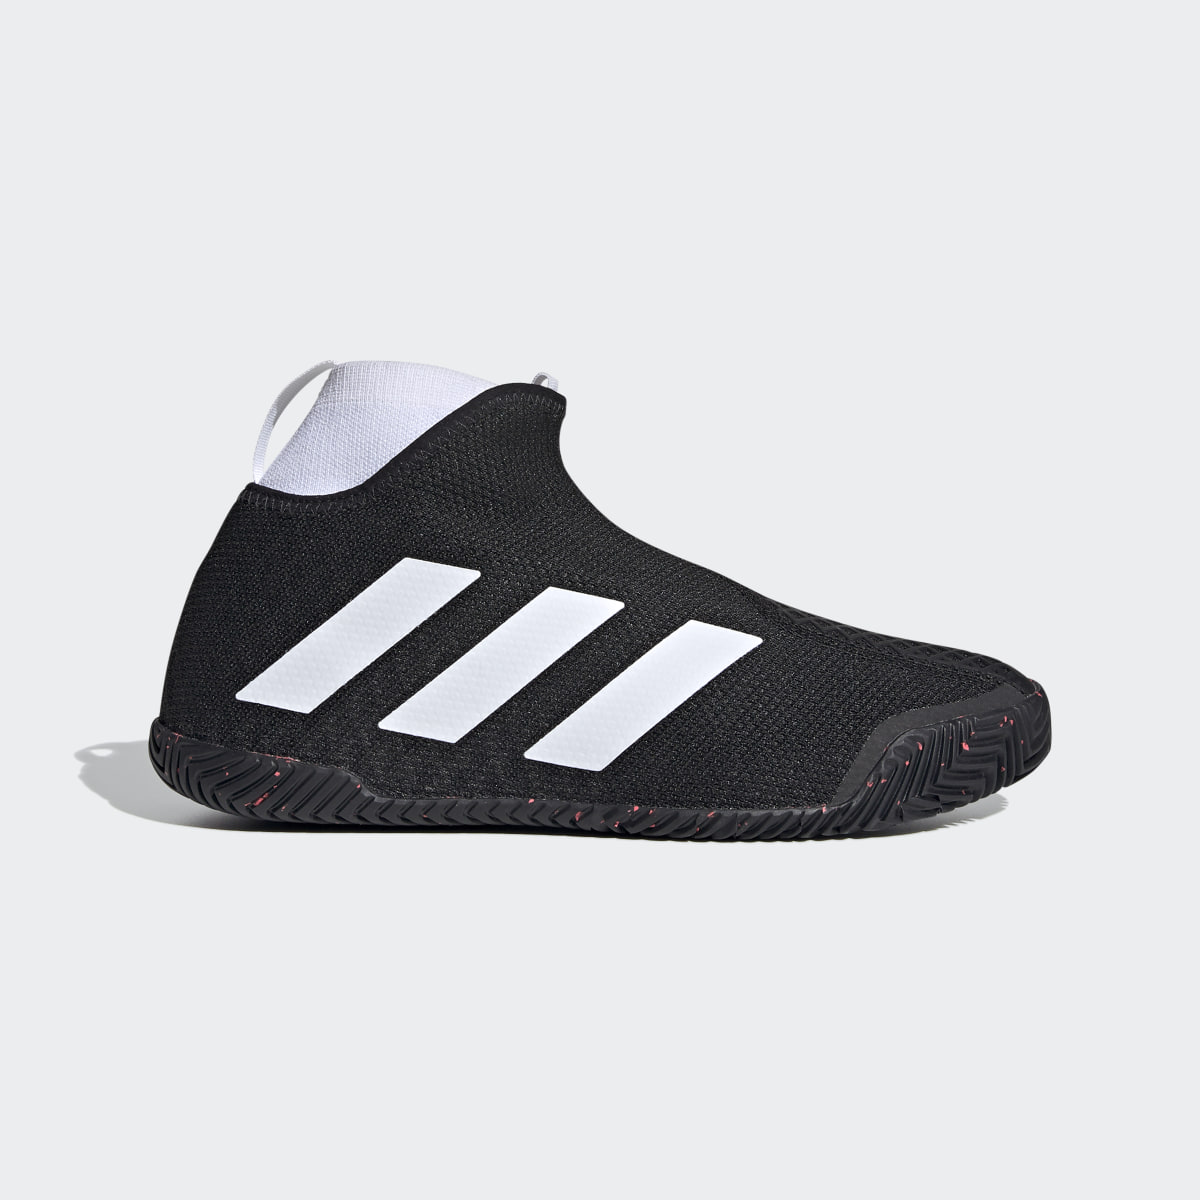 Stycon laceless hard court tennis shoes